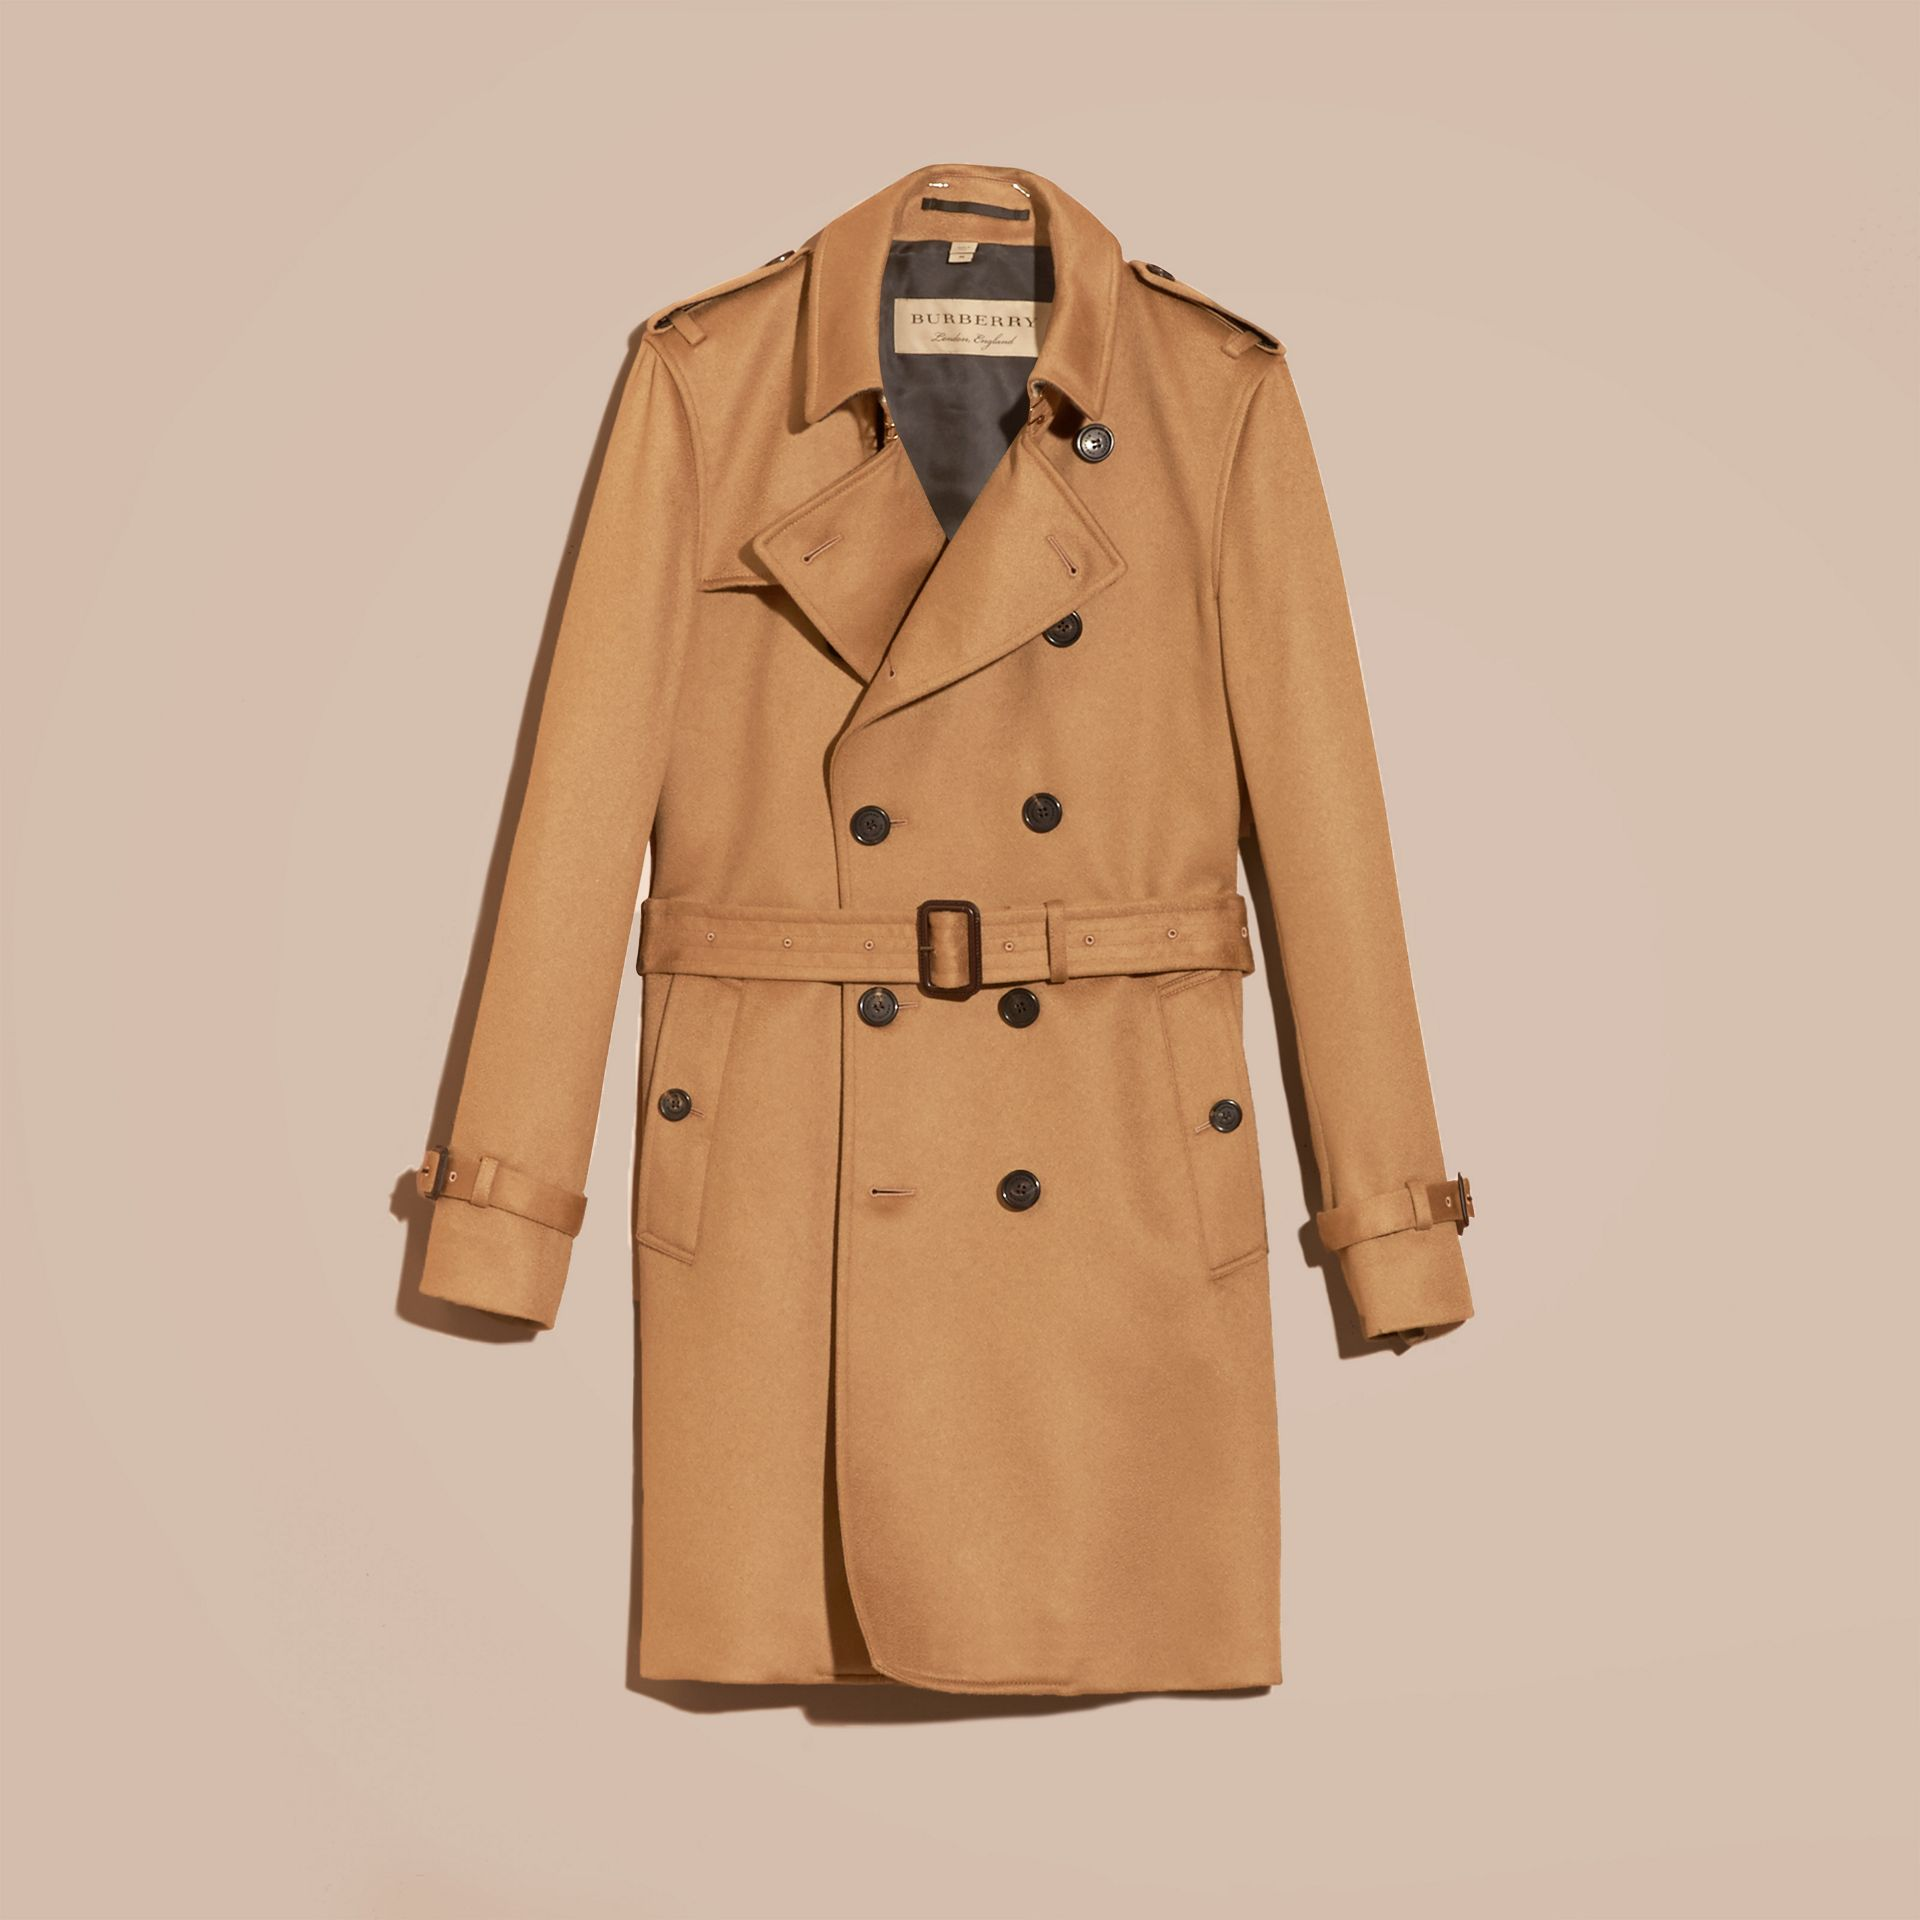 Cashmere Trench Coat in Dark Camel - Men | Burberry - gallery image 4